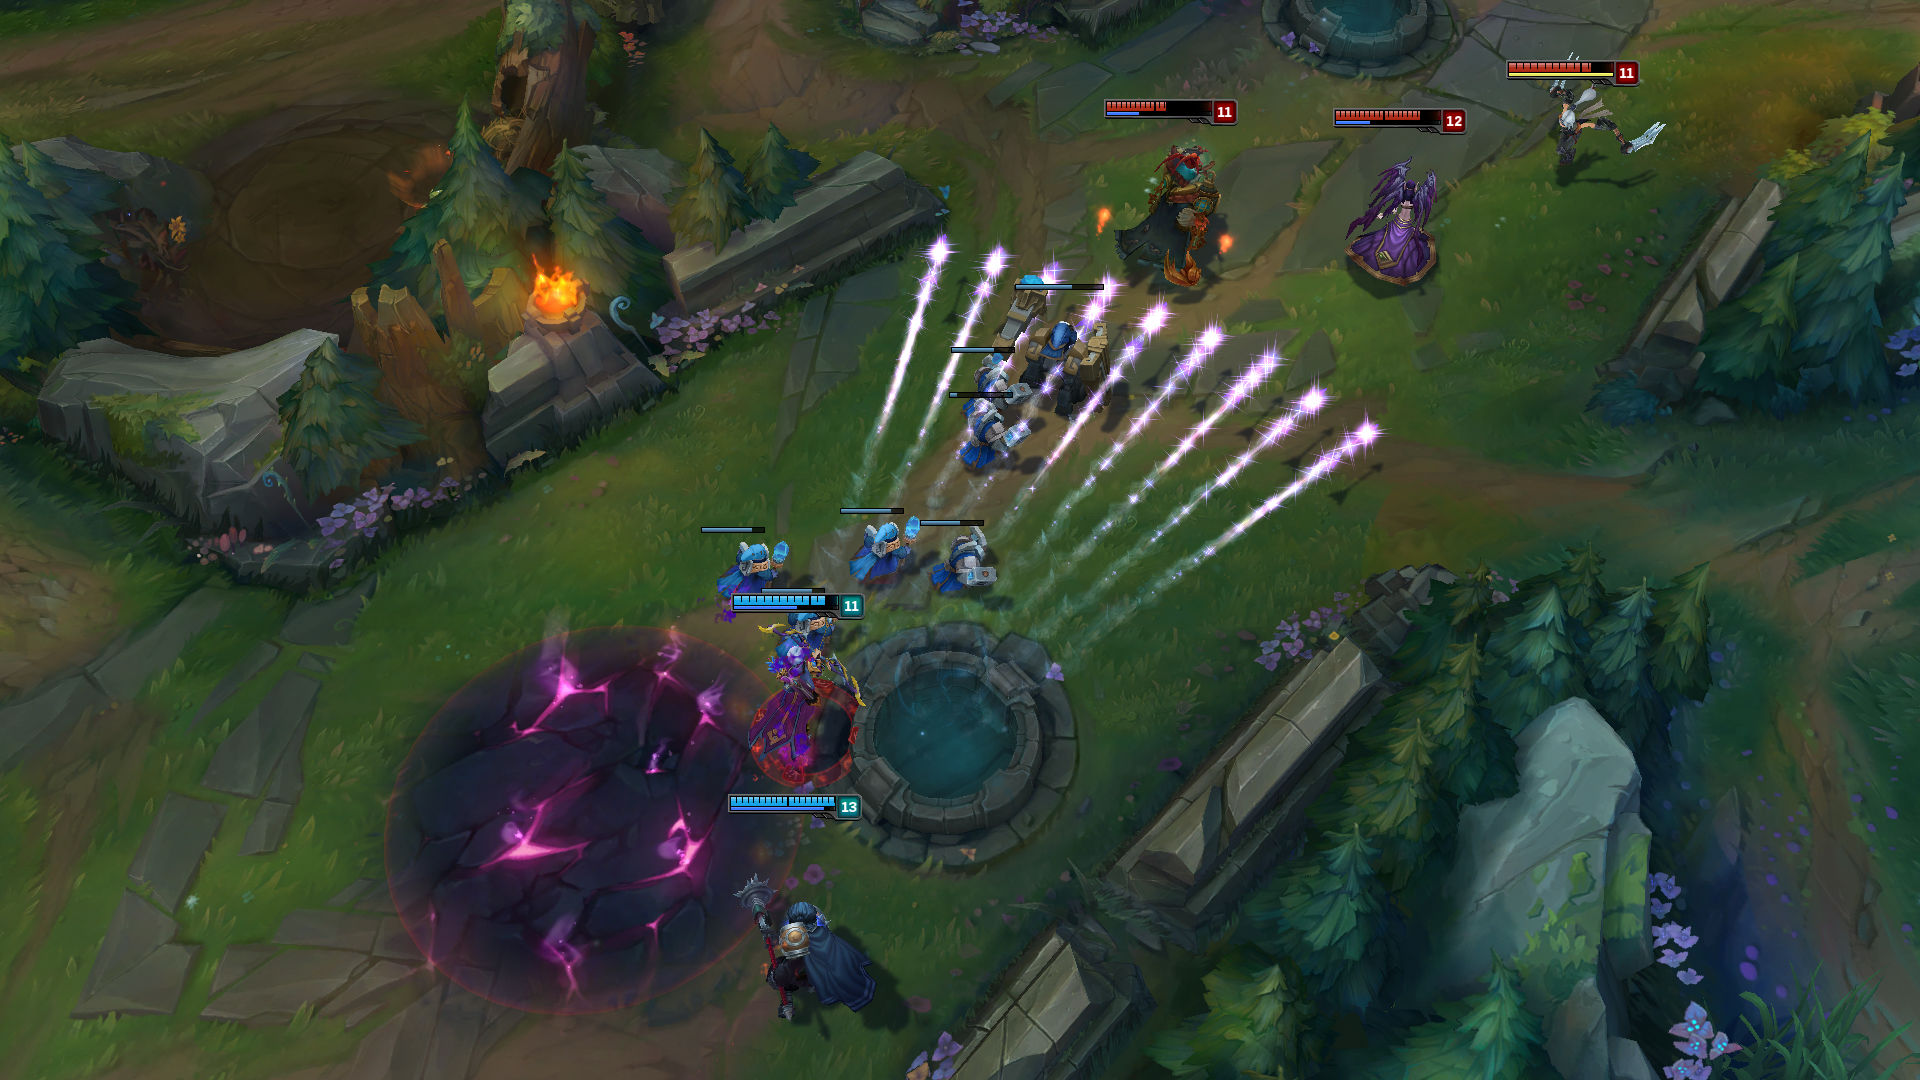 League of Legends guide: five tips to make your first game